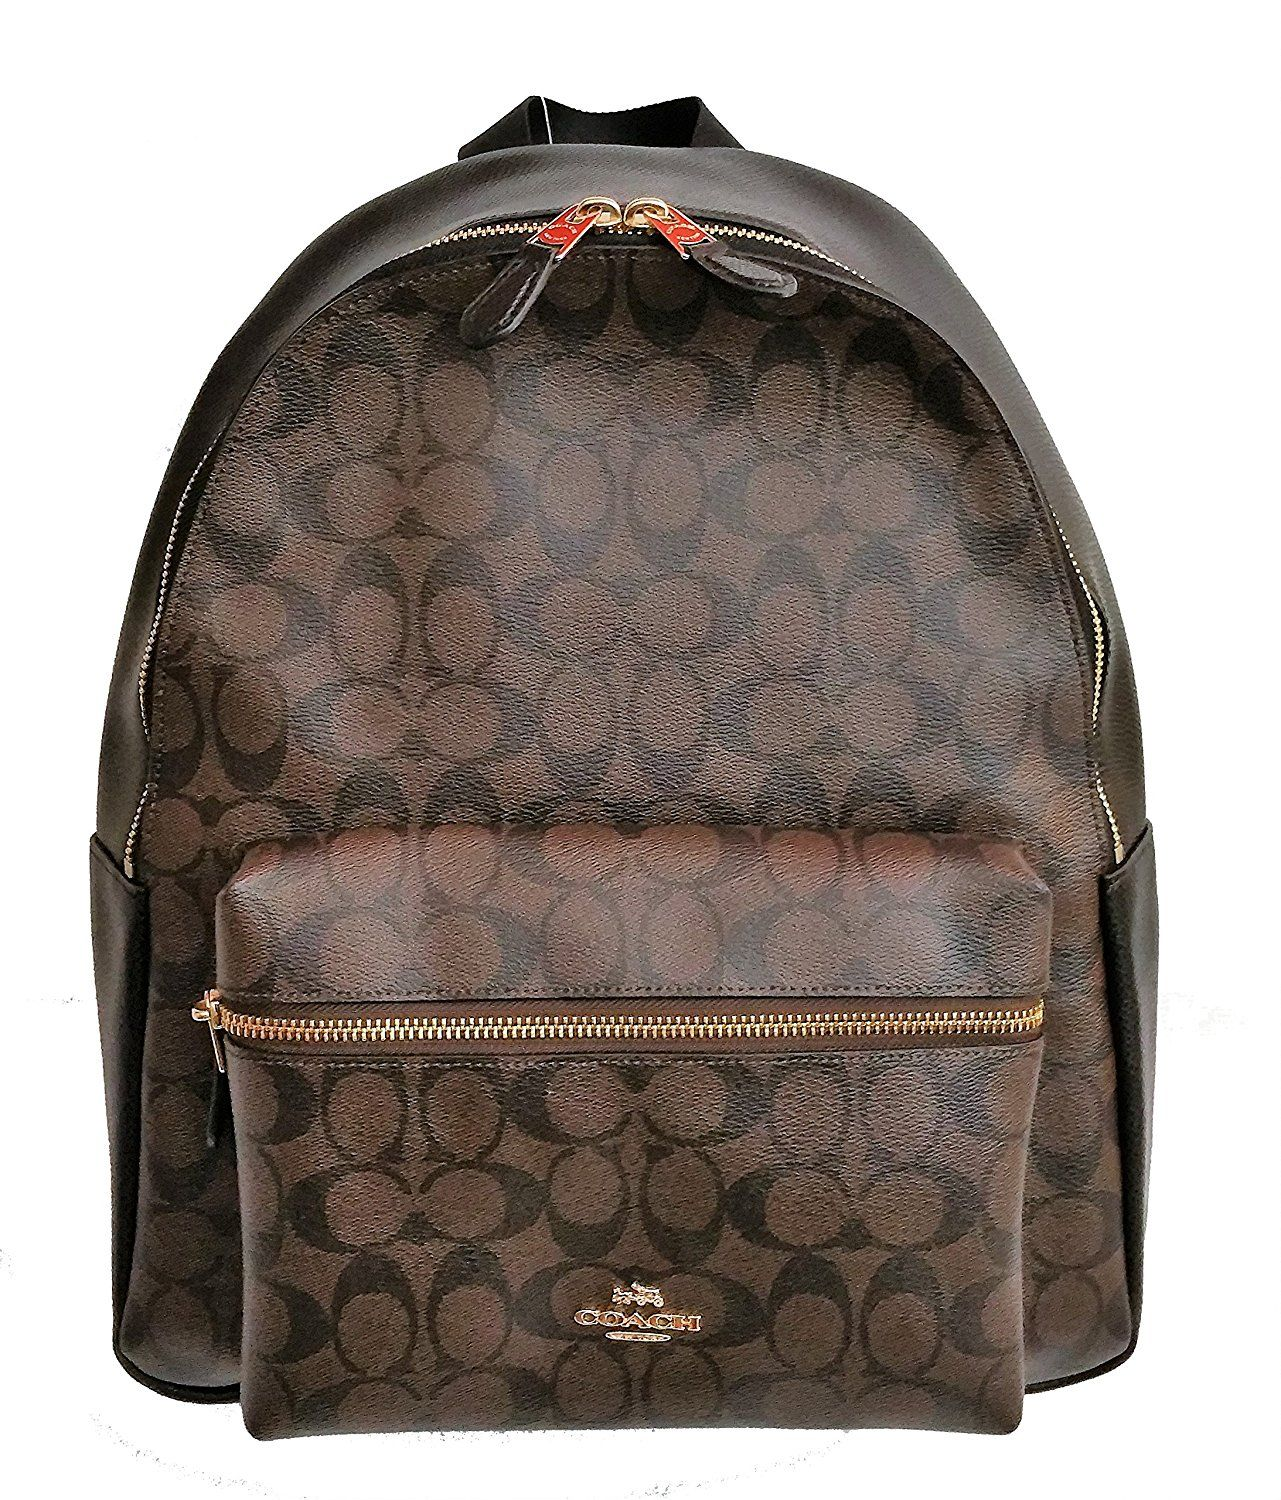 0a5def46335d Coach Charlie Pebble Leather Backpack F38288 (Signature Black Brown) -- You  can find more details by visiting the image link.